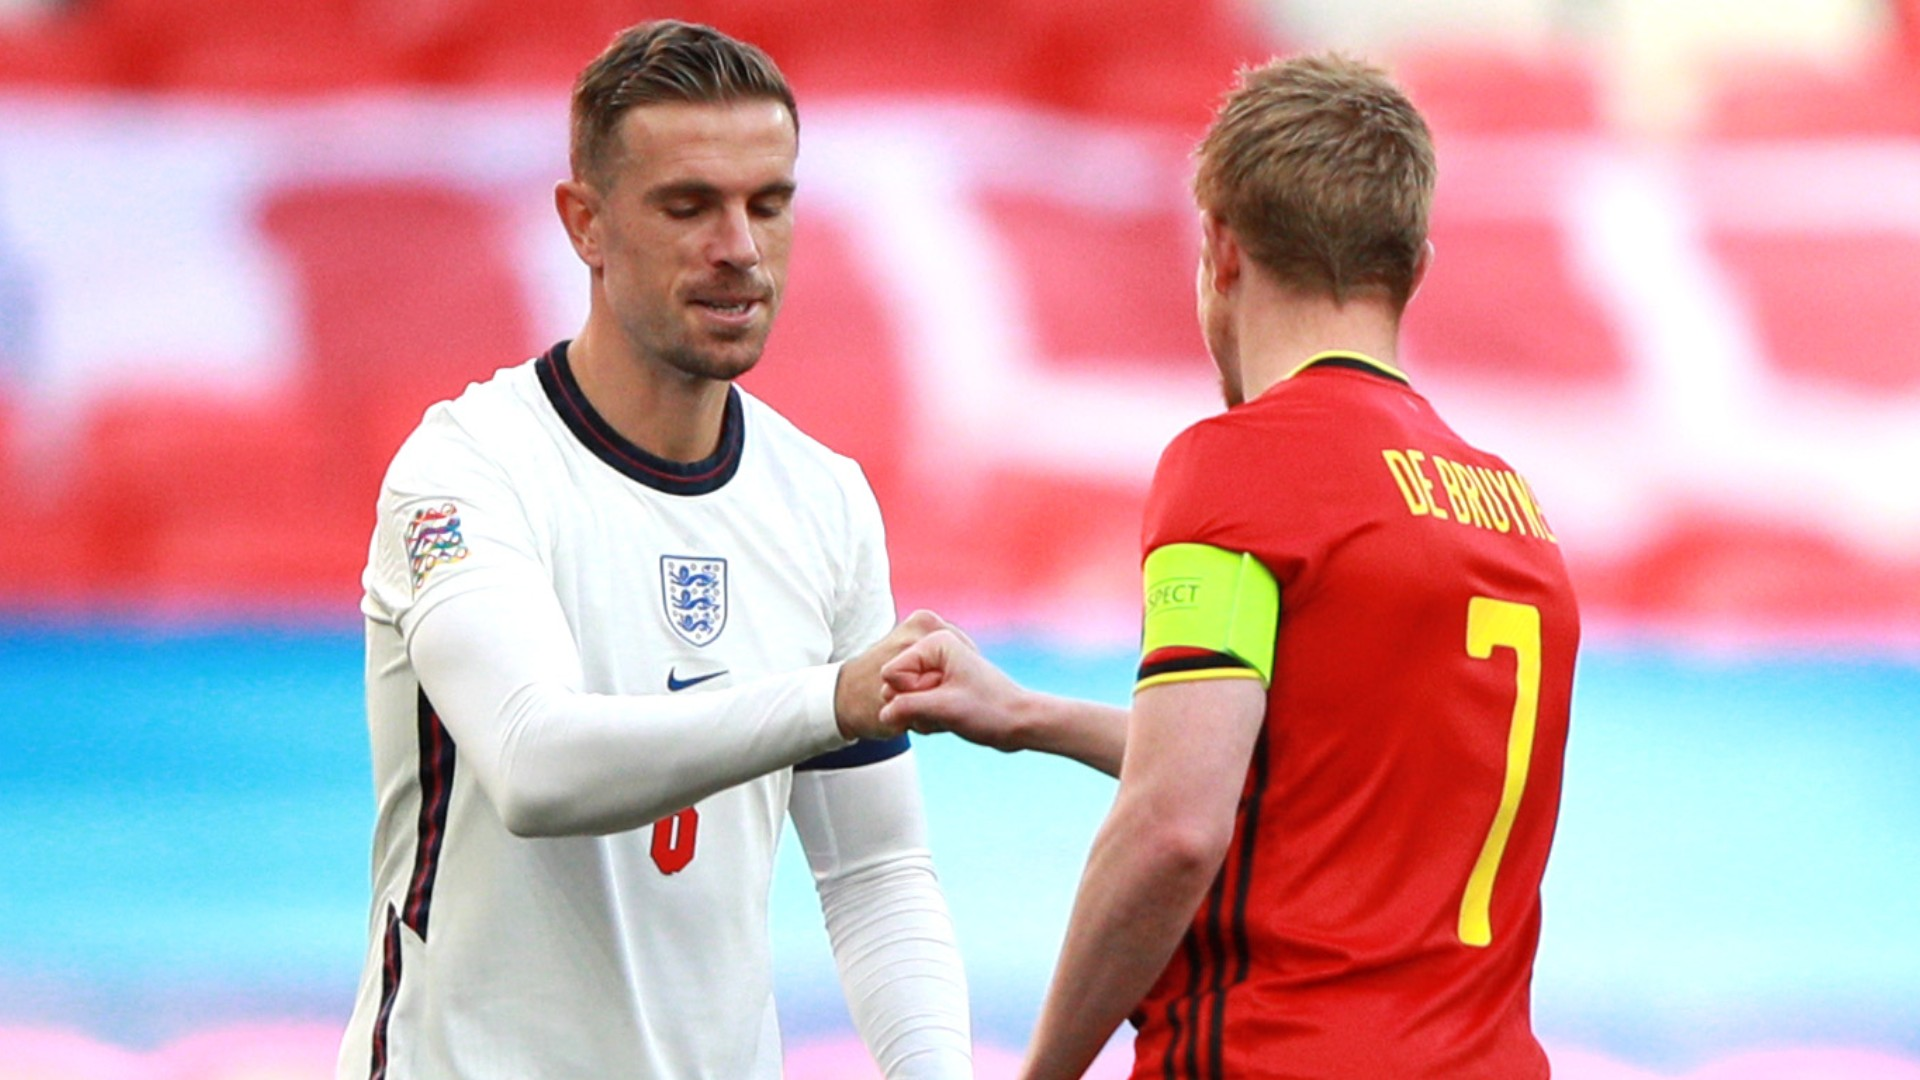 'We want to compete with the very best teams' - Henderson sets out England vision after Belgium win